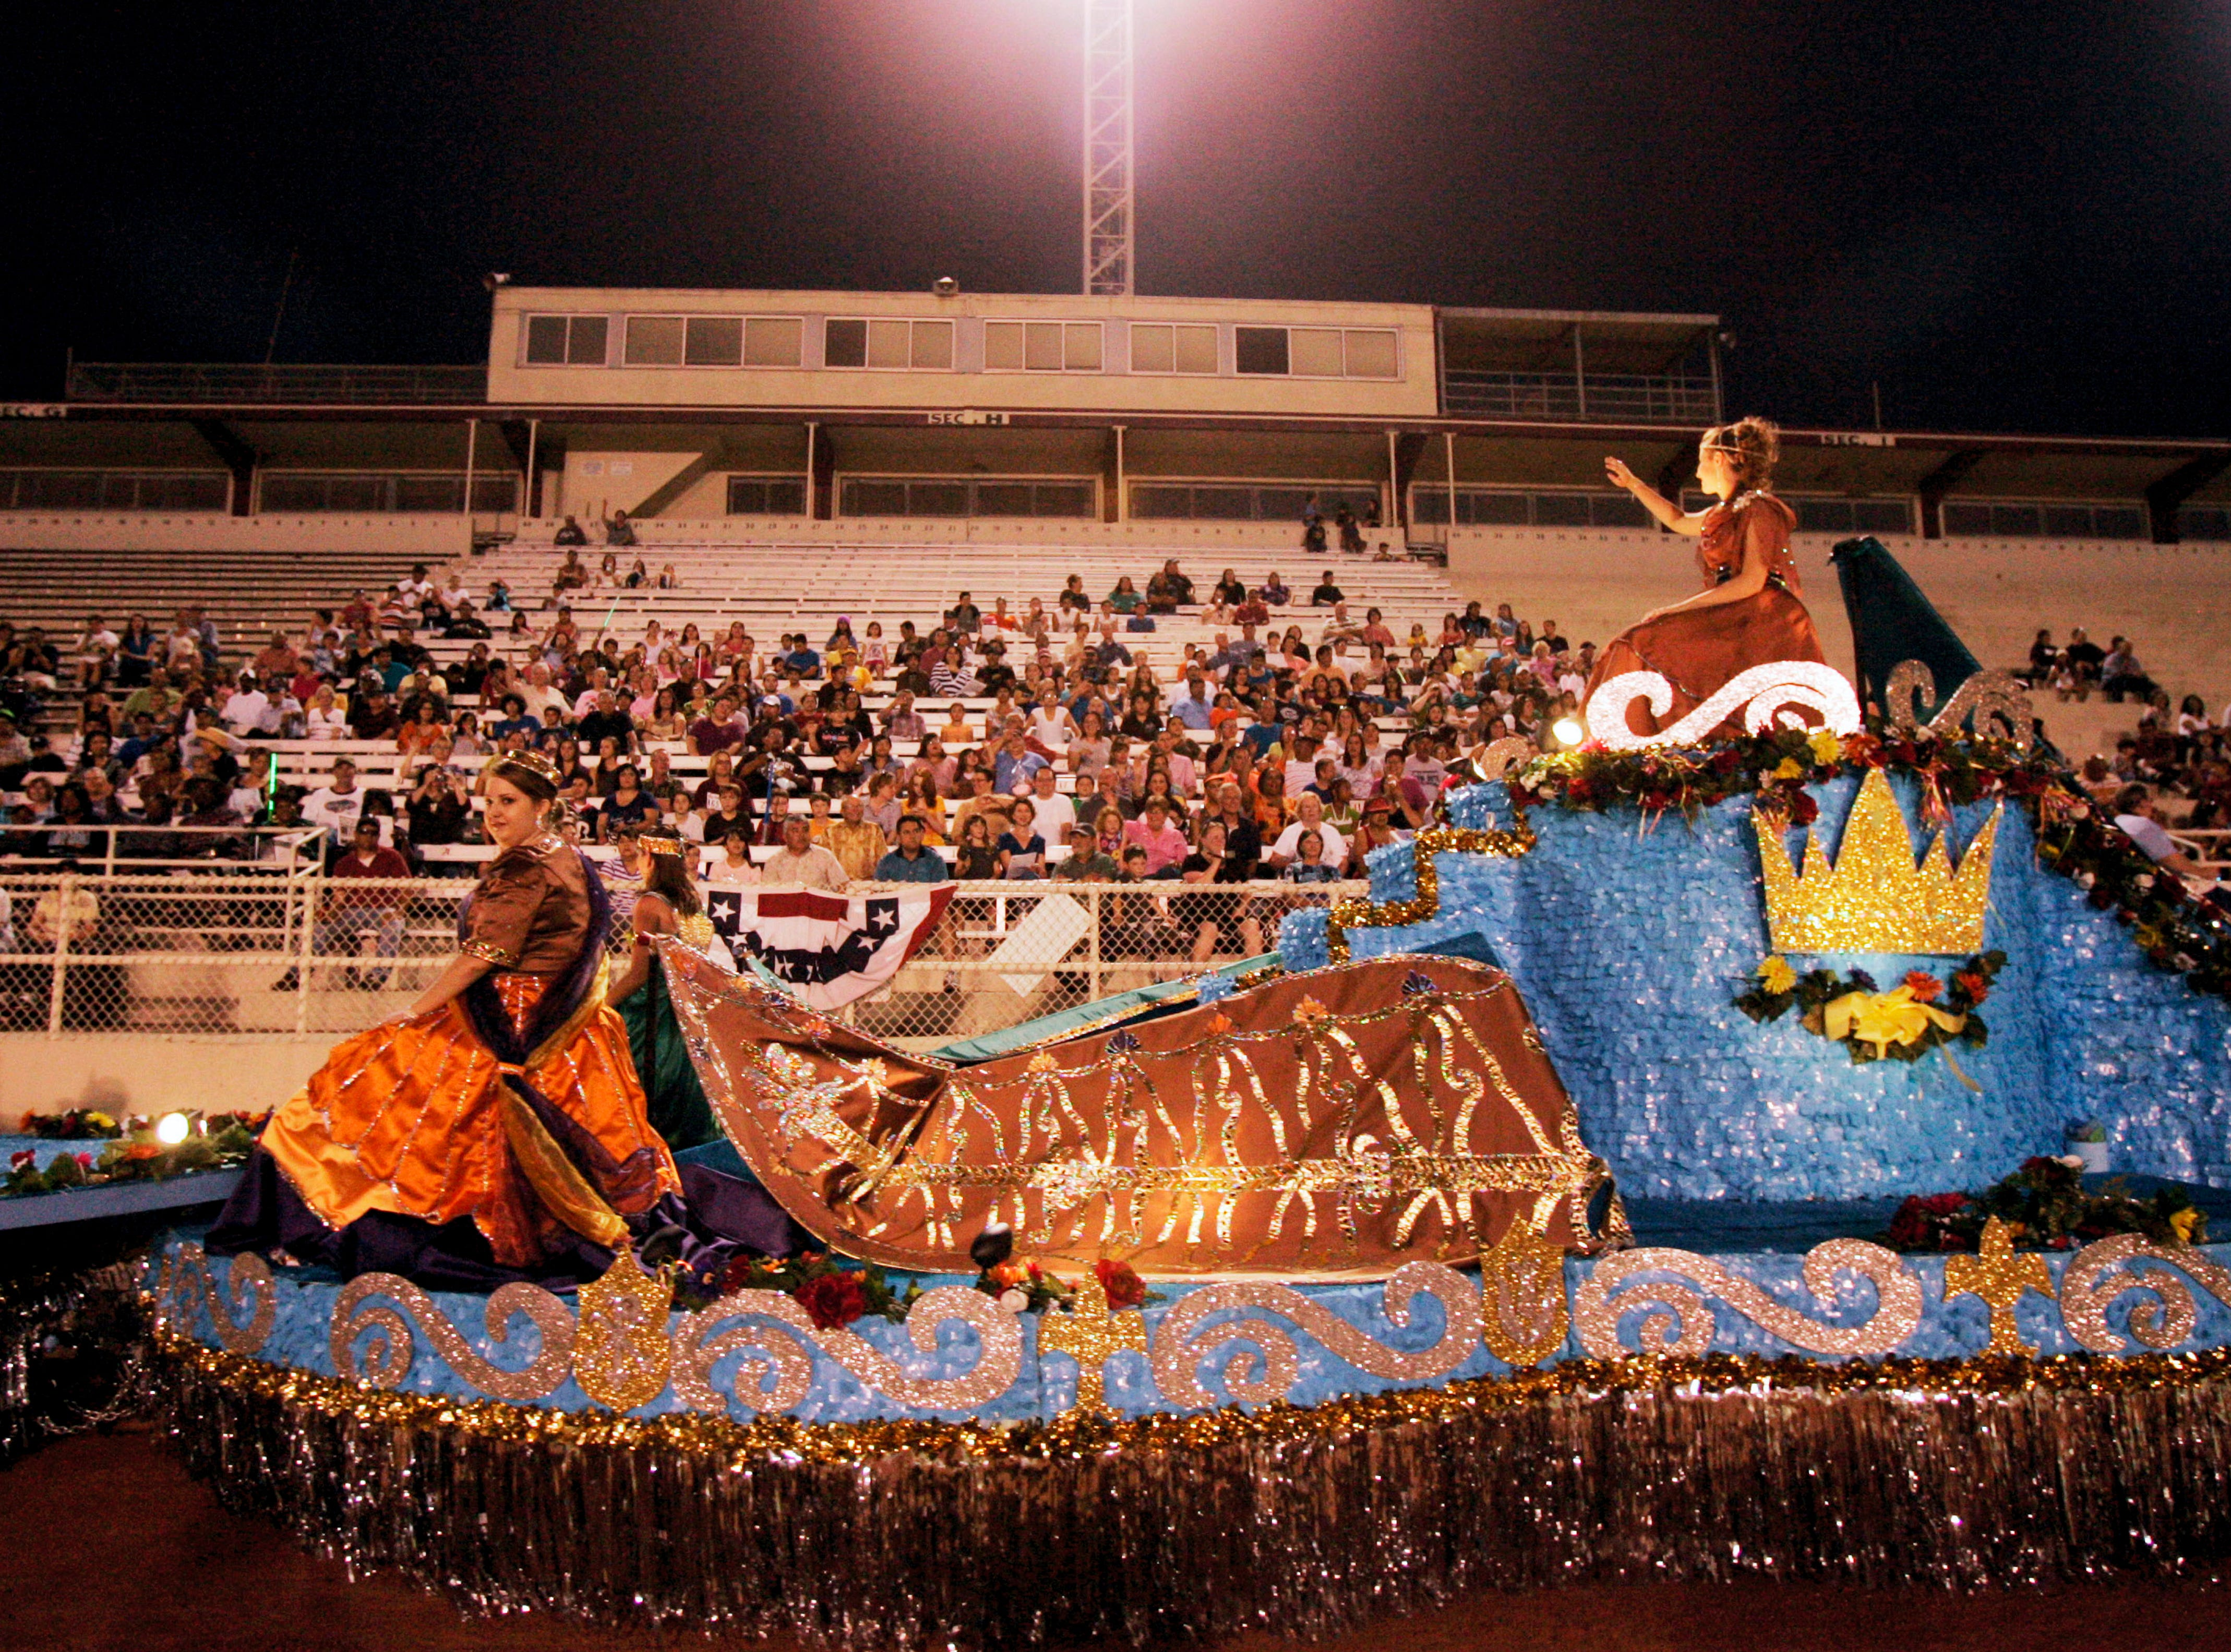 Participants on the San Antonio Lutheran Coronation float wave to the crowd Saturday, May 1, 2010 during the Buc Days Illuminated Night Parade at Buc Stadium in Corpus Christi.